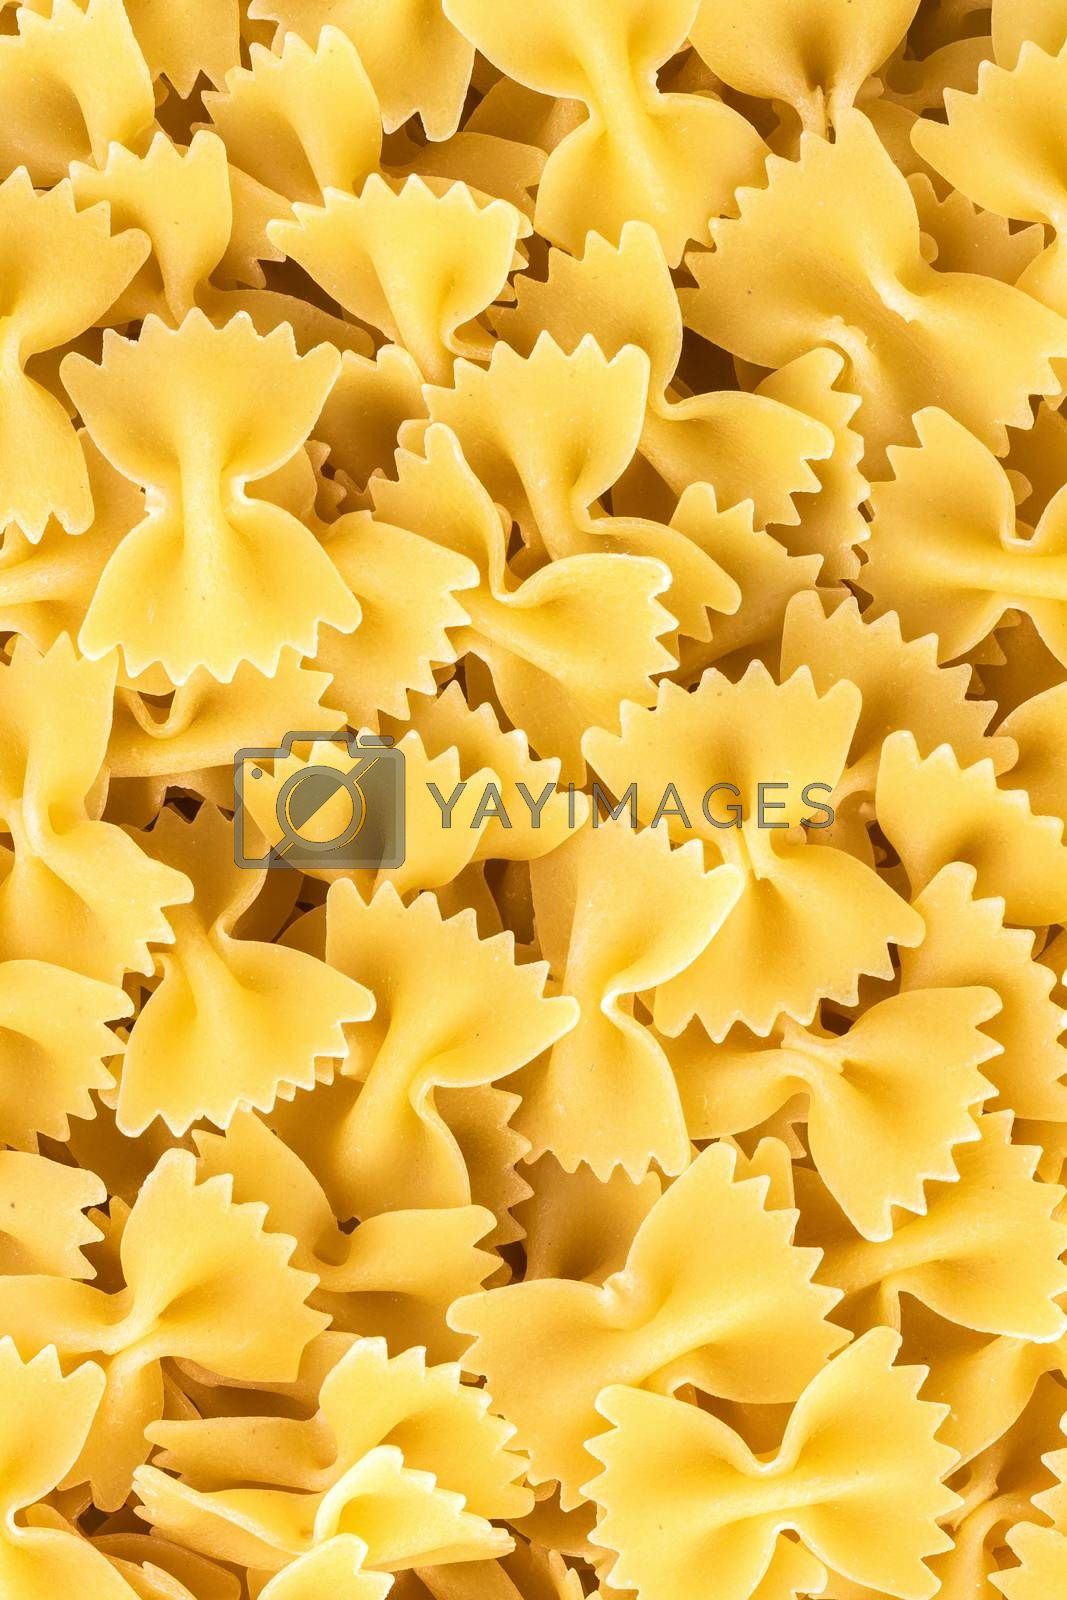 """Famous variety of type and shape of Italian pasta. Dry pasta bows """"farfalle"""". Heap of bow tie macaroni. The name of this pasta type is derived from the Italian word """"farfalla"""" (butterfly)."""